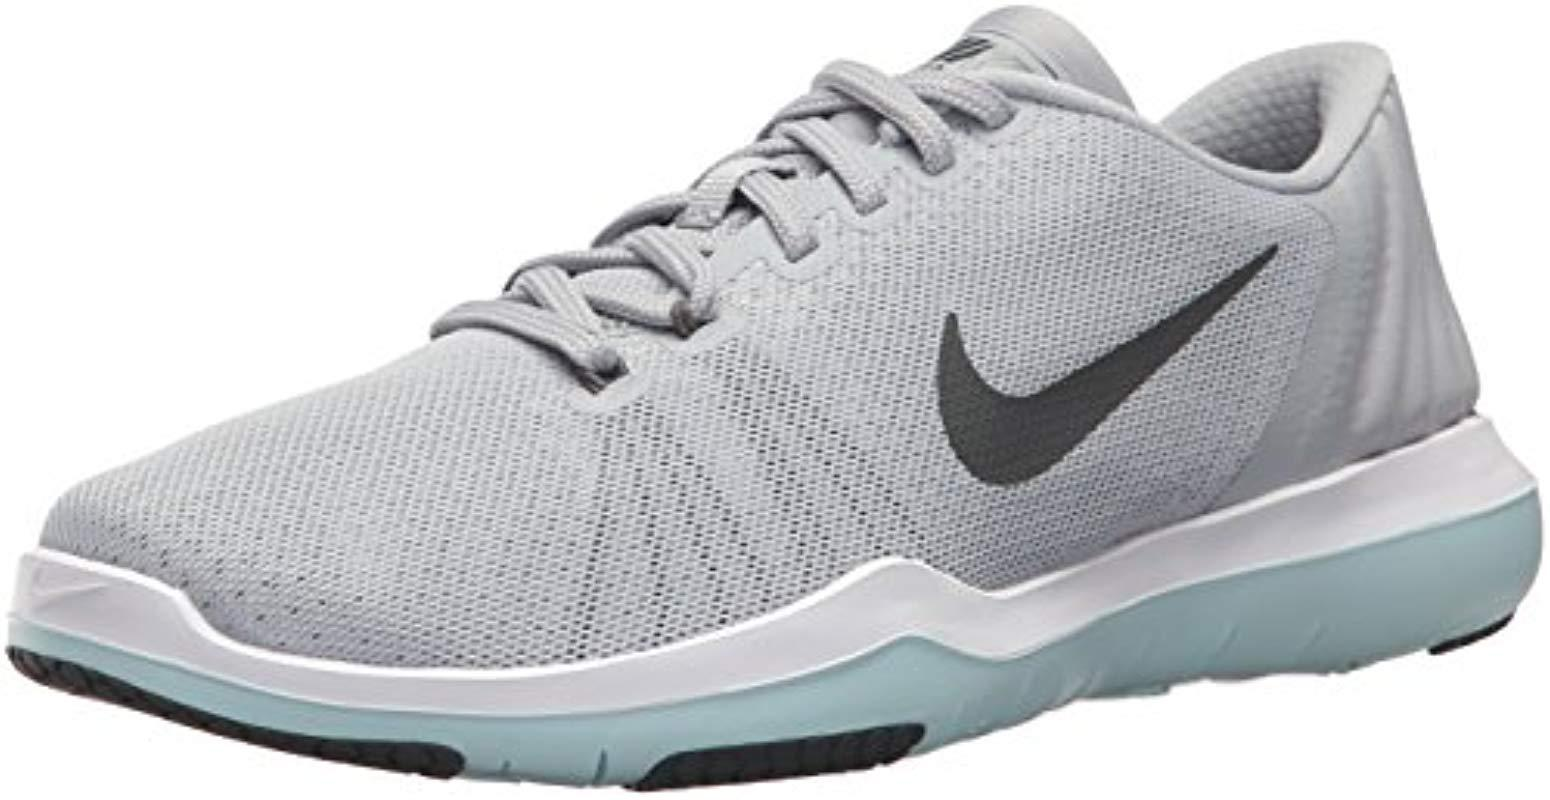 11acac80070c Lyst - Nike  s Wmns Flex Supreme Tr 5 Sneakers in Gray - Save 27%